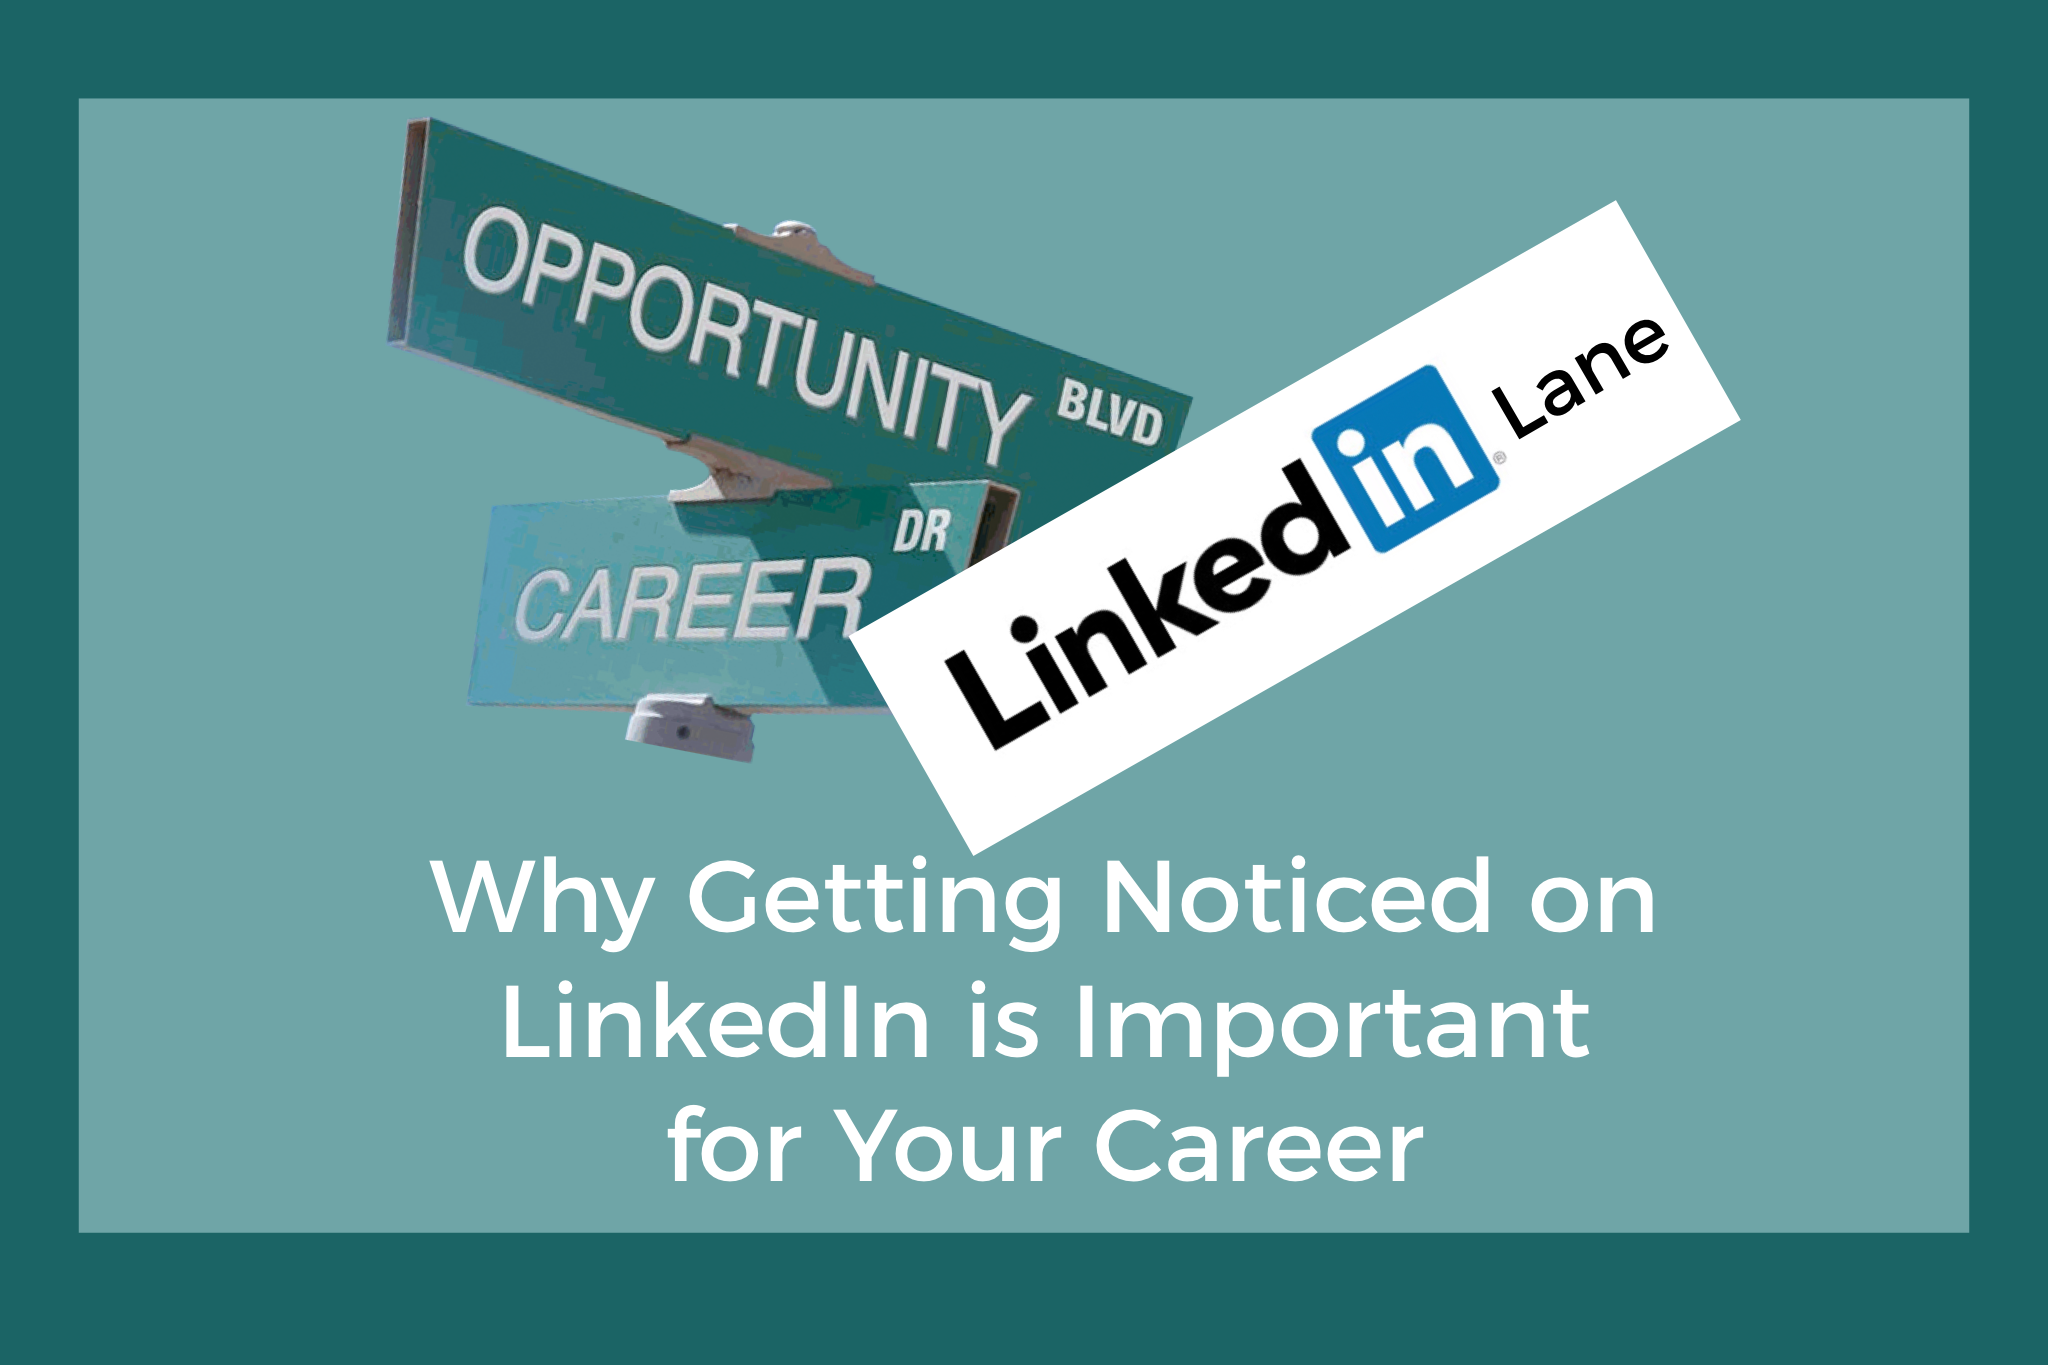 Why Getting Noticed on LinkedIn Is Important for Your Career